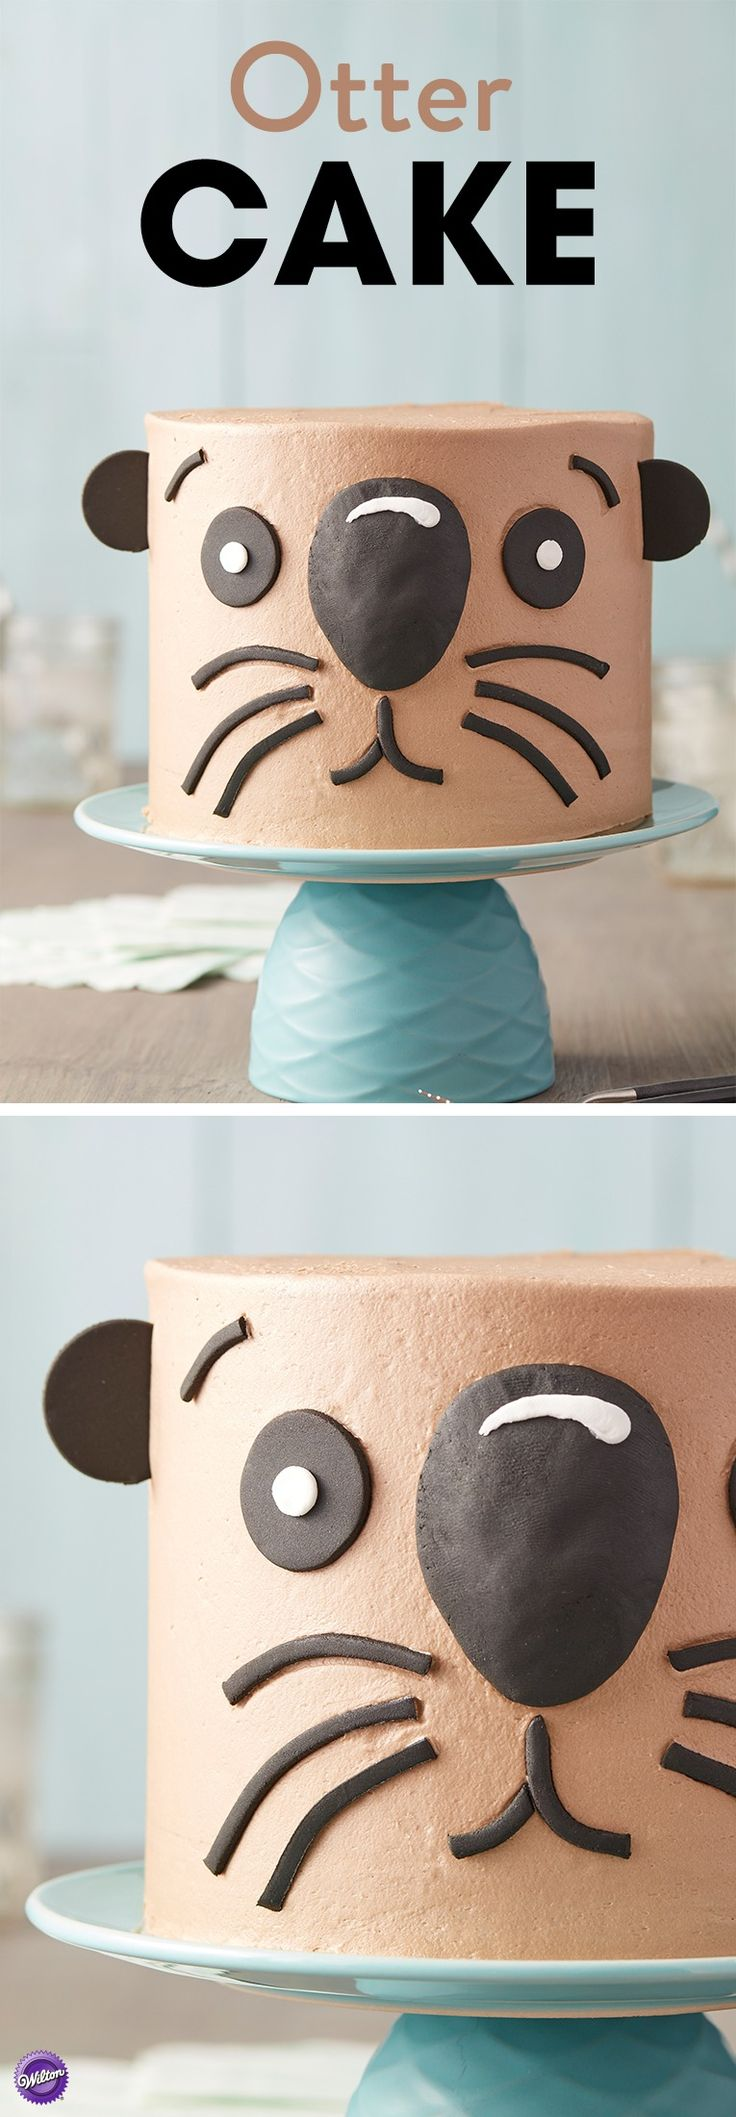 "This Otterly Adorable Otter Cake is ready for some birthday fun! An easy cake to make and decorate, this otter cake is great for beginners and is easy to personalize with a birthday message or an ""I'm Otterly Yours"" note on top! Use Decorator Preferred fondant to add the otter's features to this cake. With a sweet smiling face, this otter cake is sure to be the life of your party!"